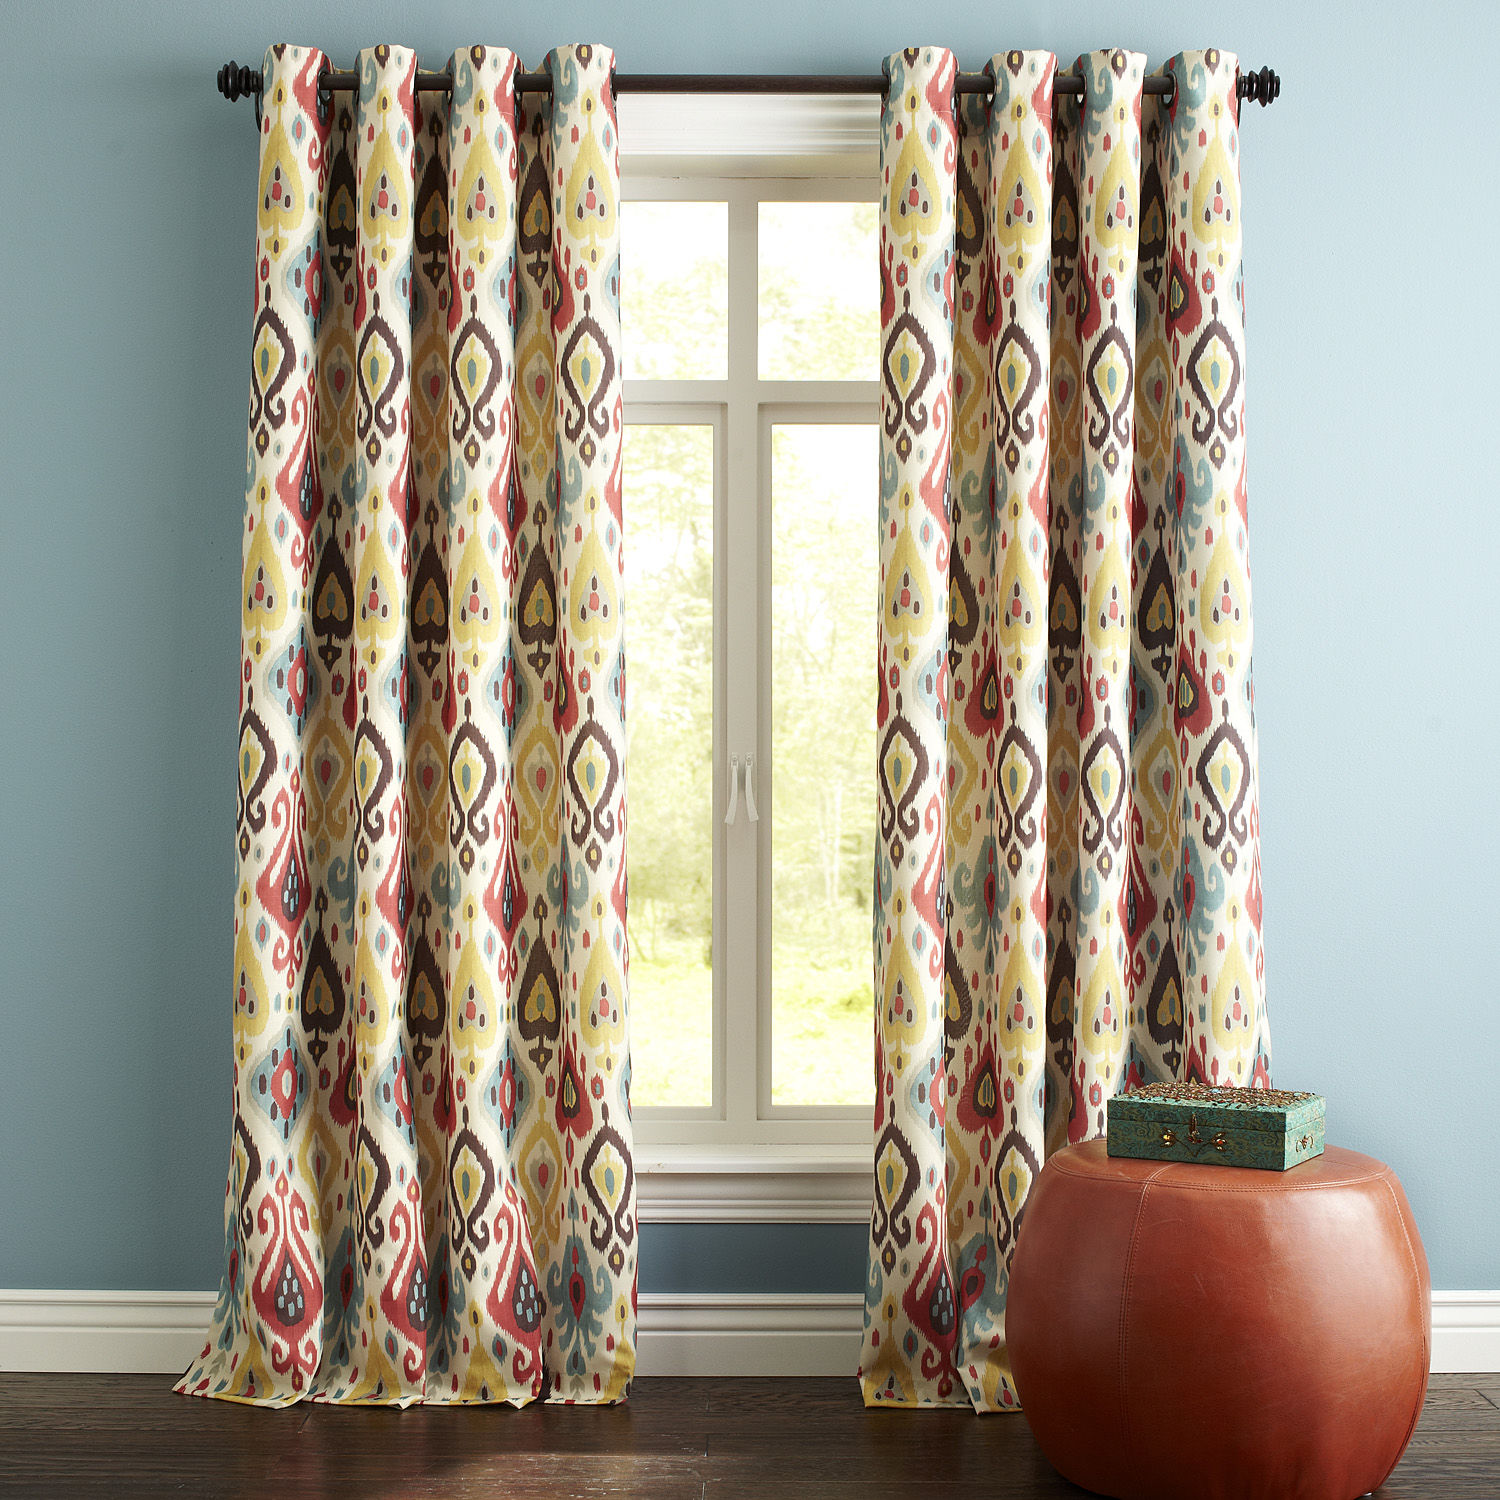 Find great deals on eBay for curtains pier one. Shop with confidence.